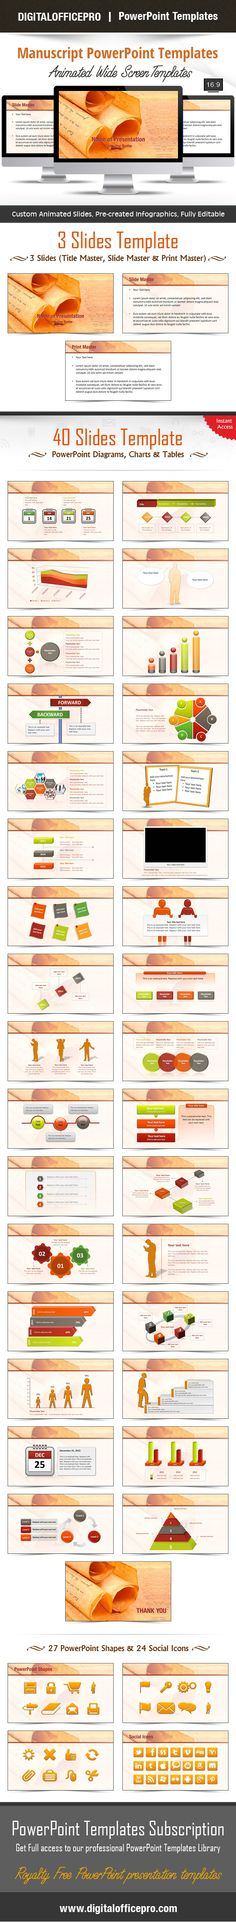 Best Friends PowerPoint Template Backgrounds Friends, Of and Shape - summer powerpoint template